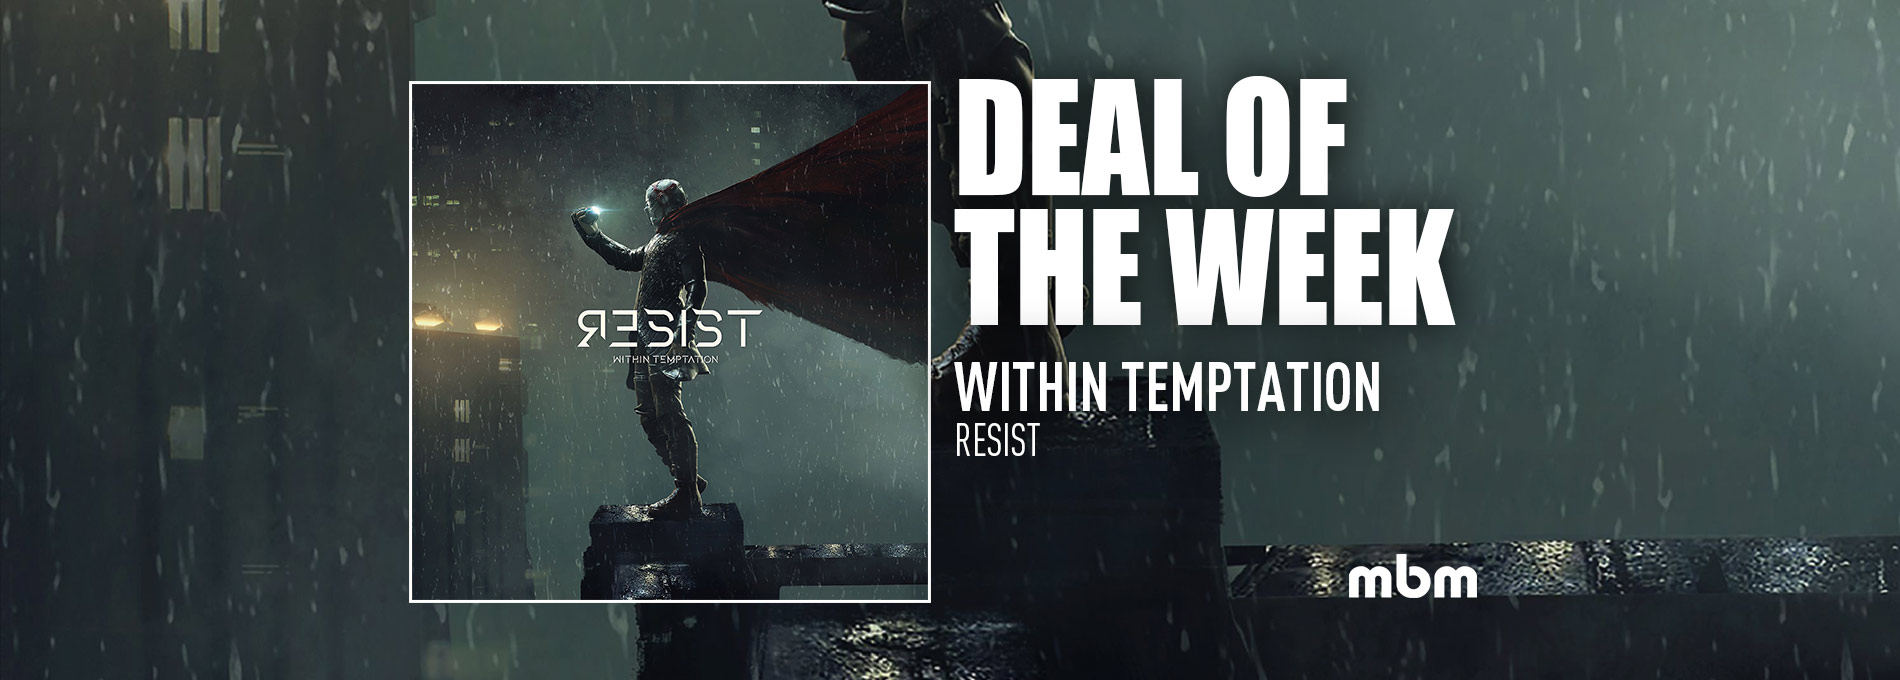 Deal Of The Week: WITHIN TEMPTATION - Resist